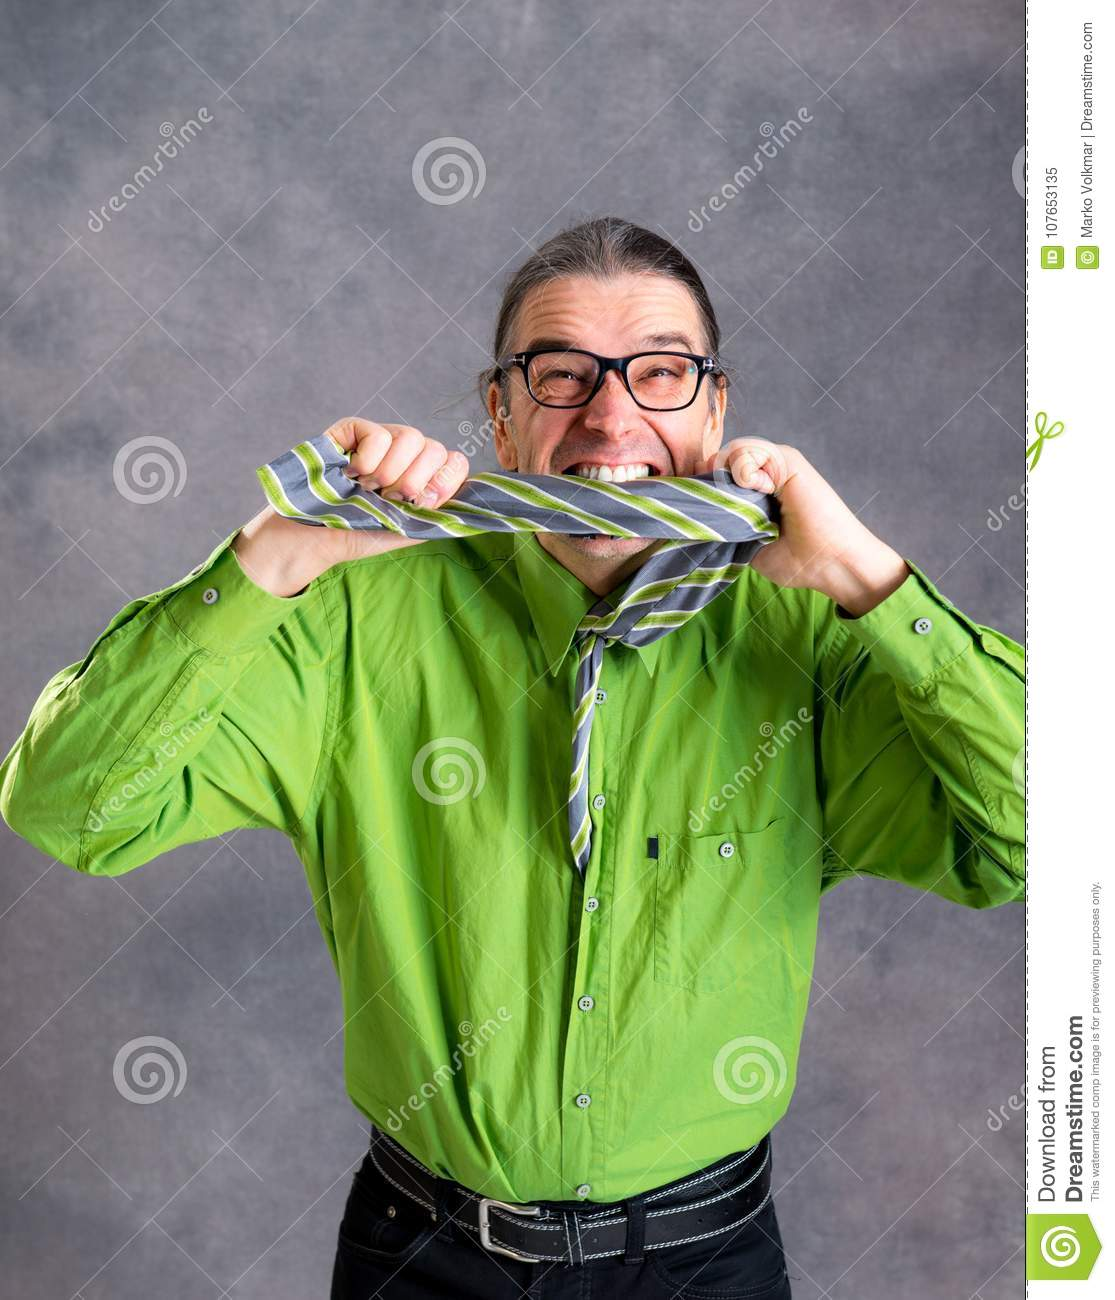 Stressed man in green shirt and glasses biting in his necktie